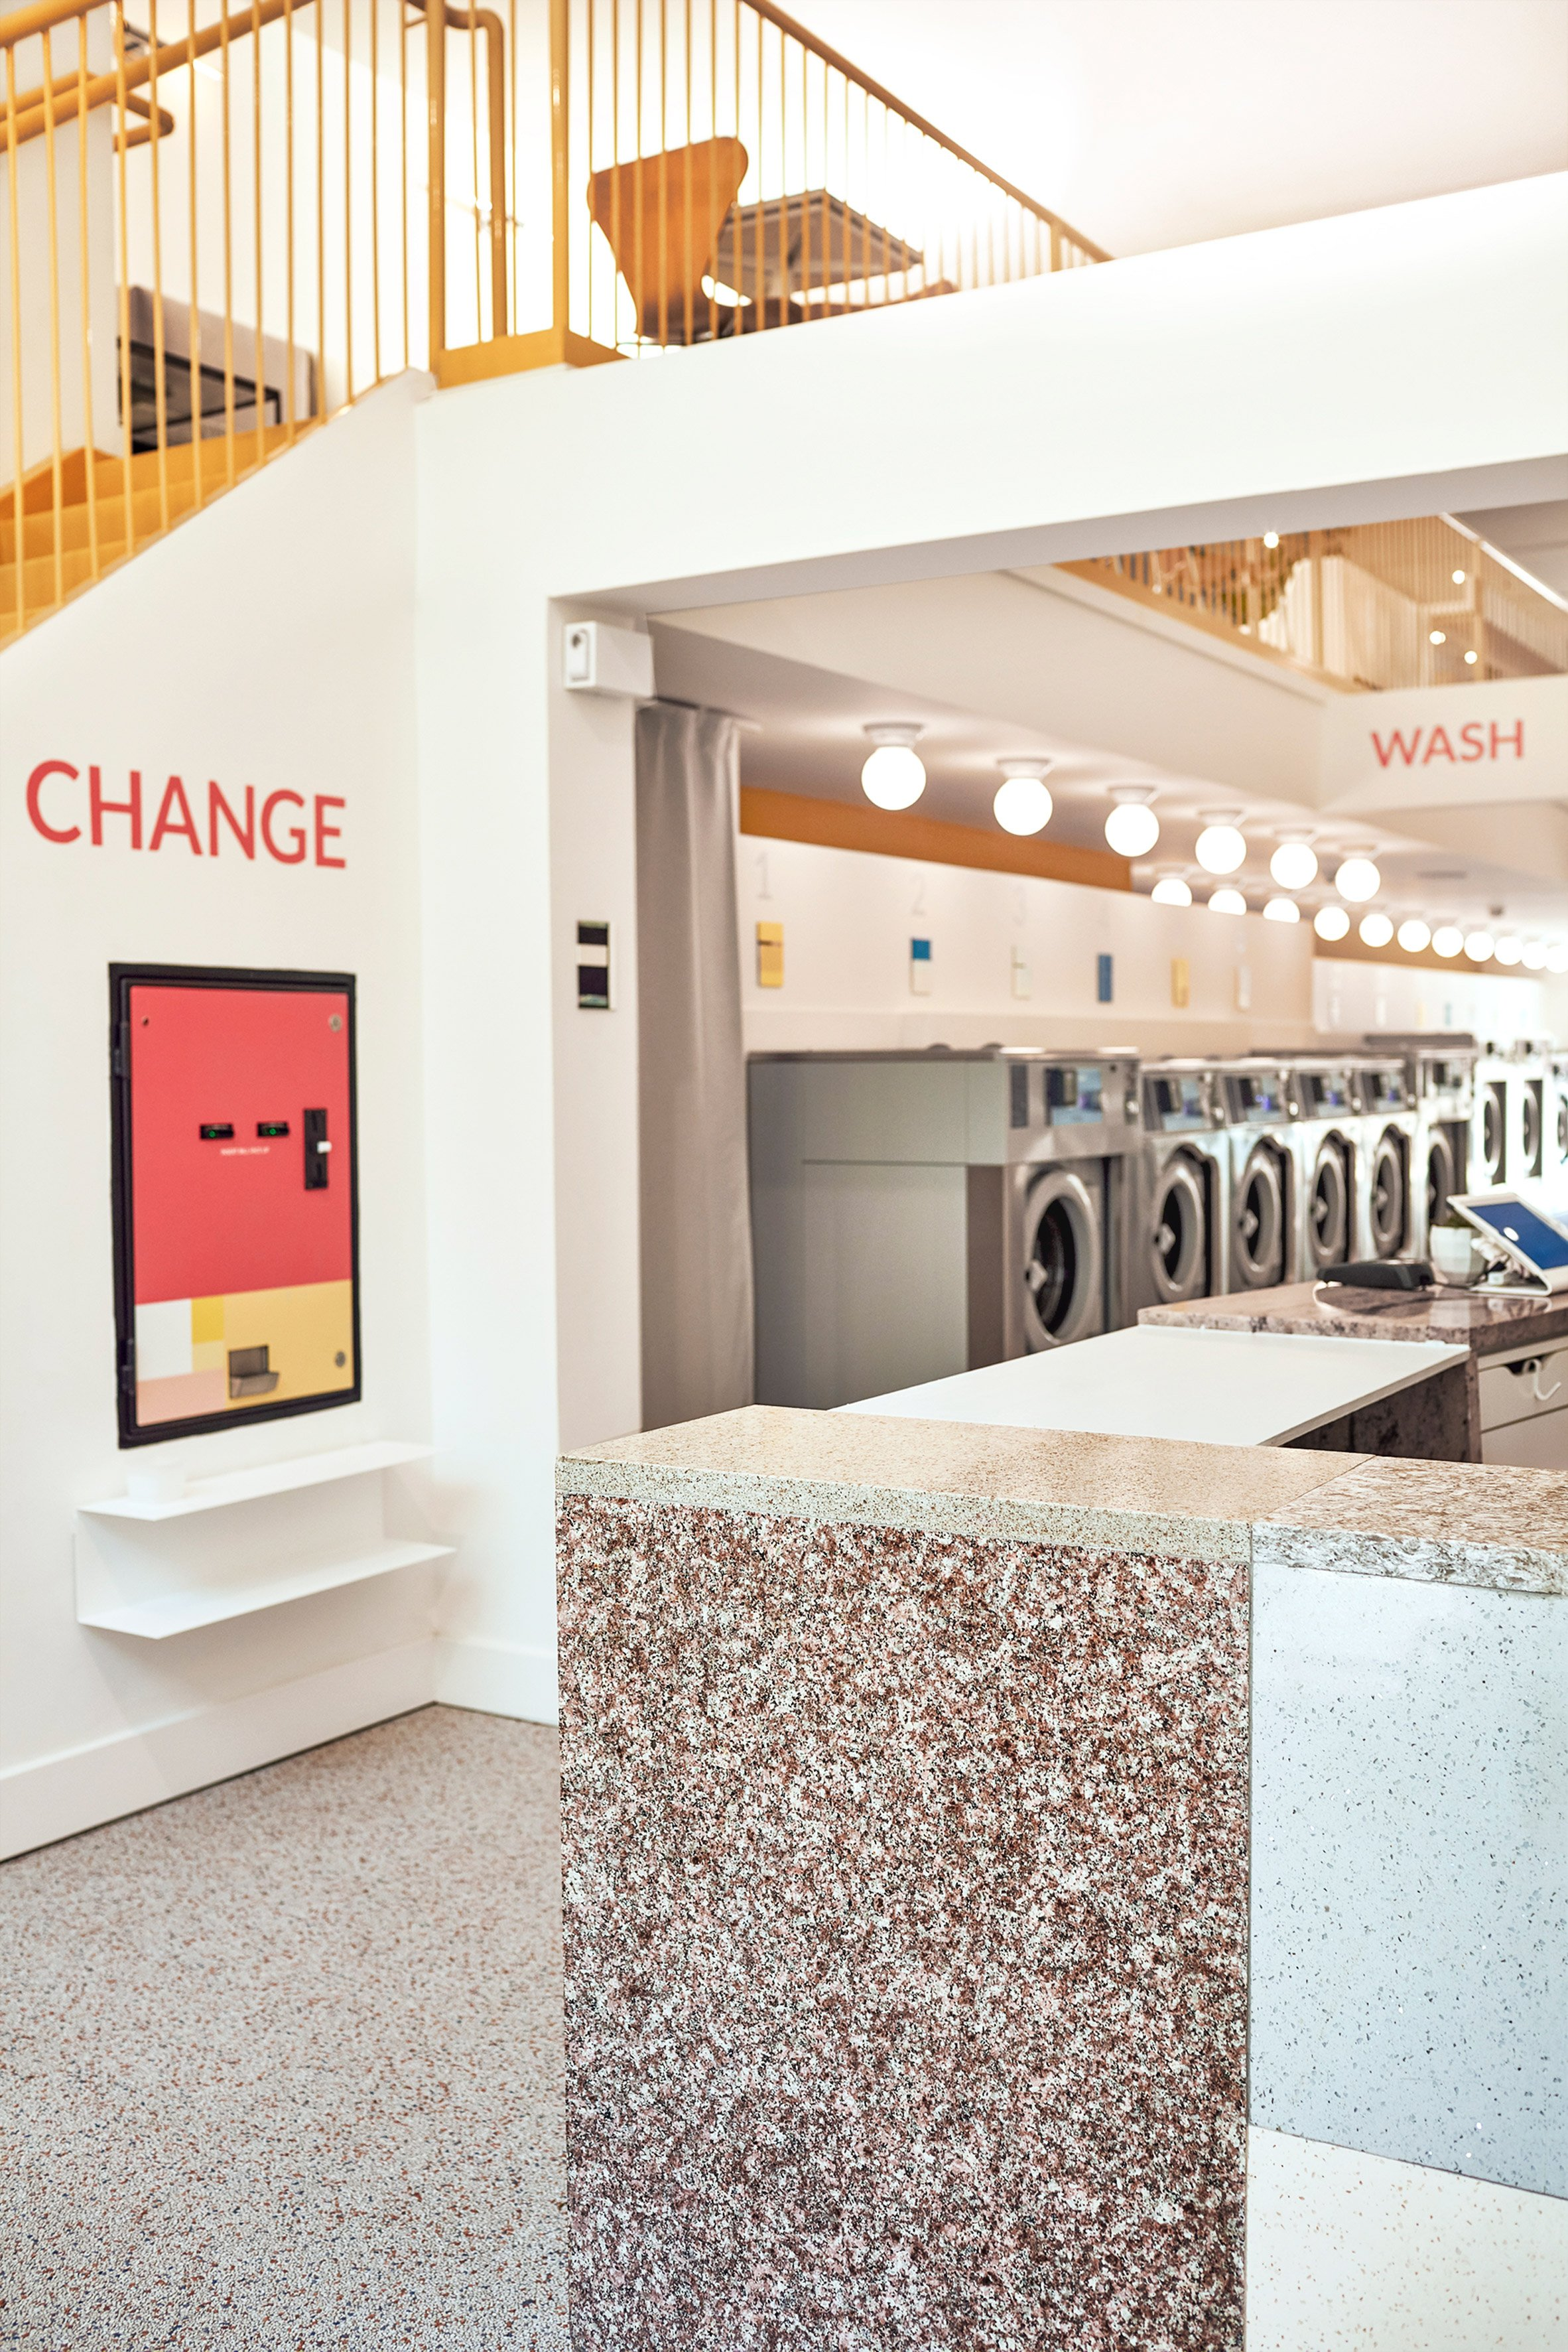 Corinna and Theresa Williams pair laundromat and cafe at Celsious in Brooklyn